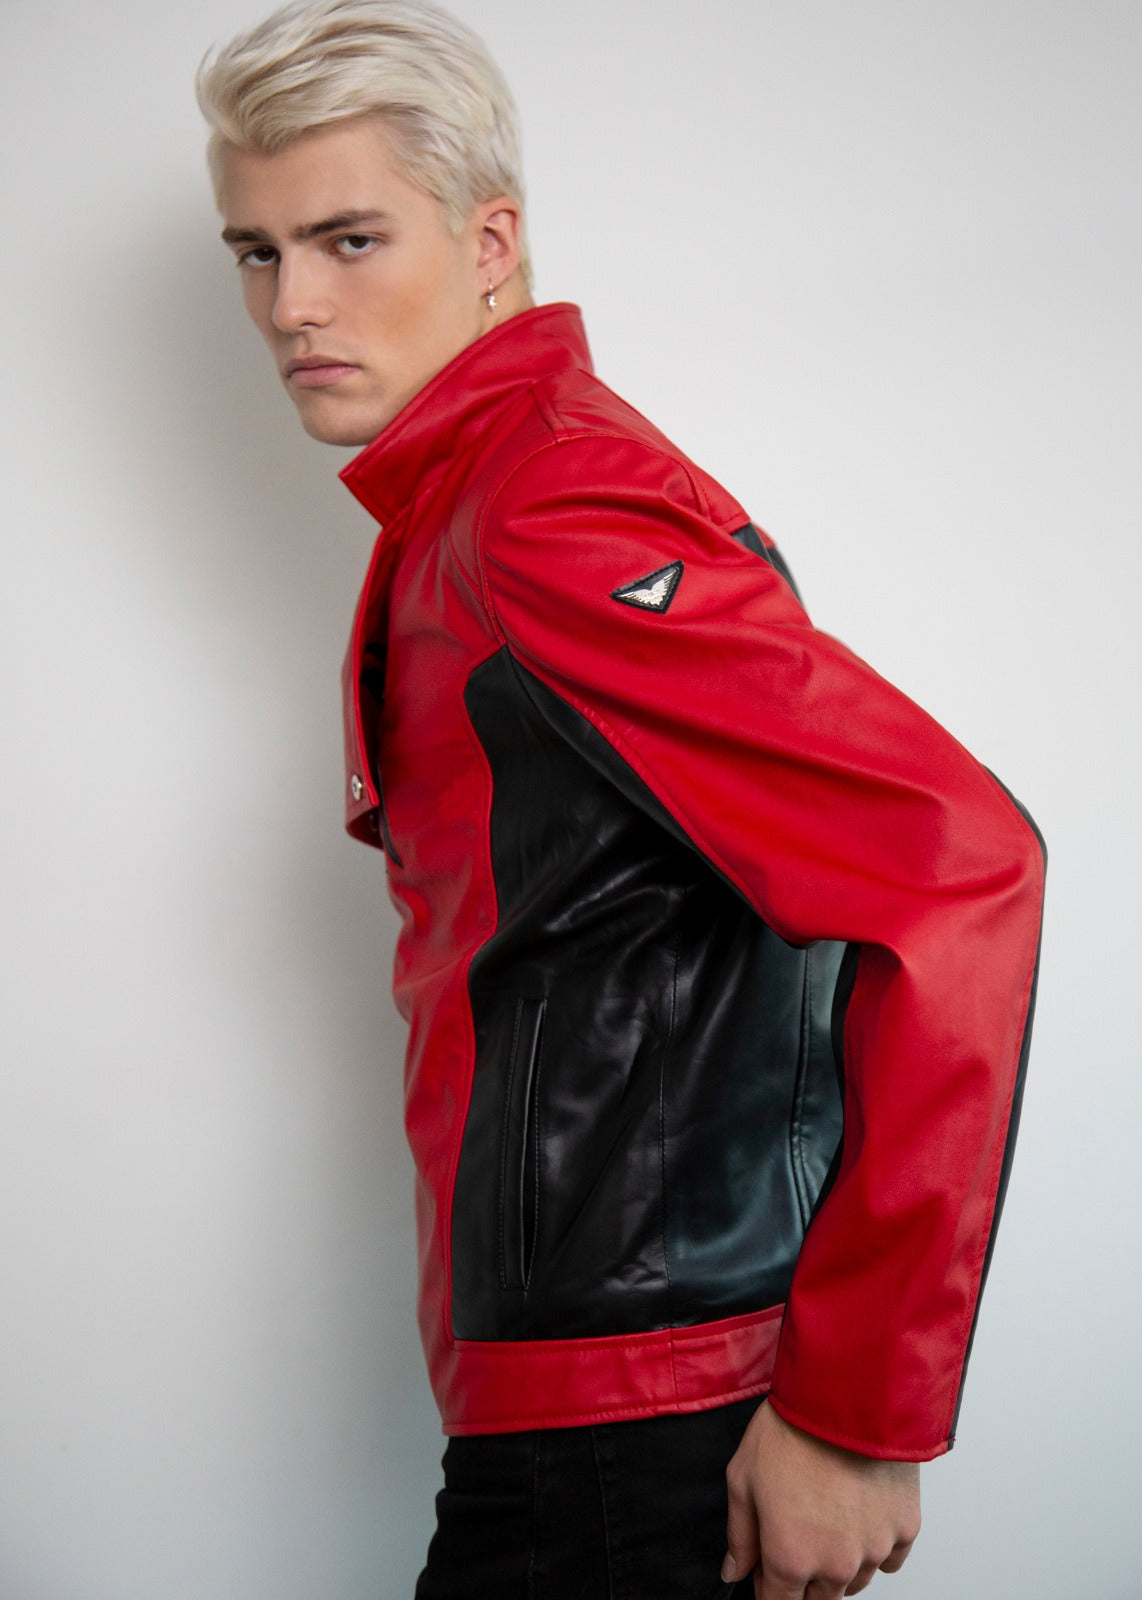 Buy Spider-Man Last Stand Leather Jacket